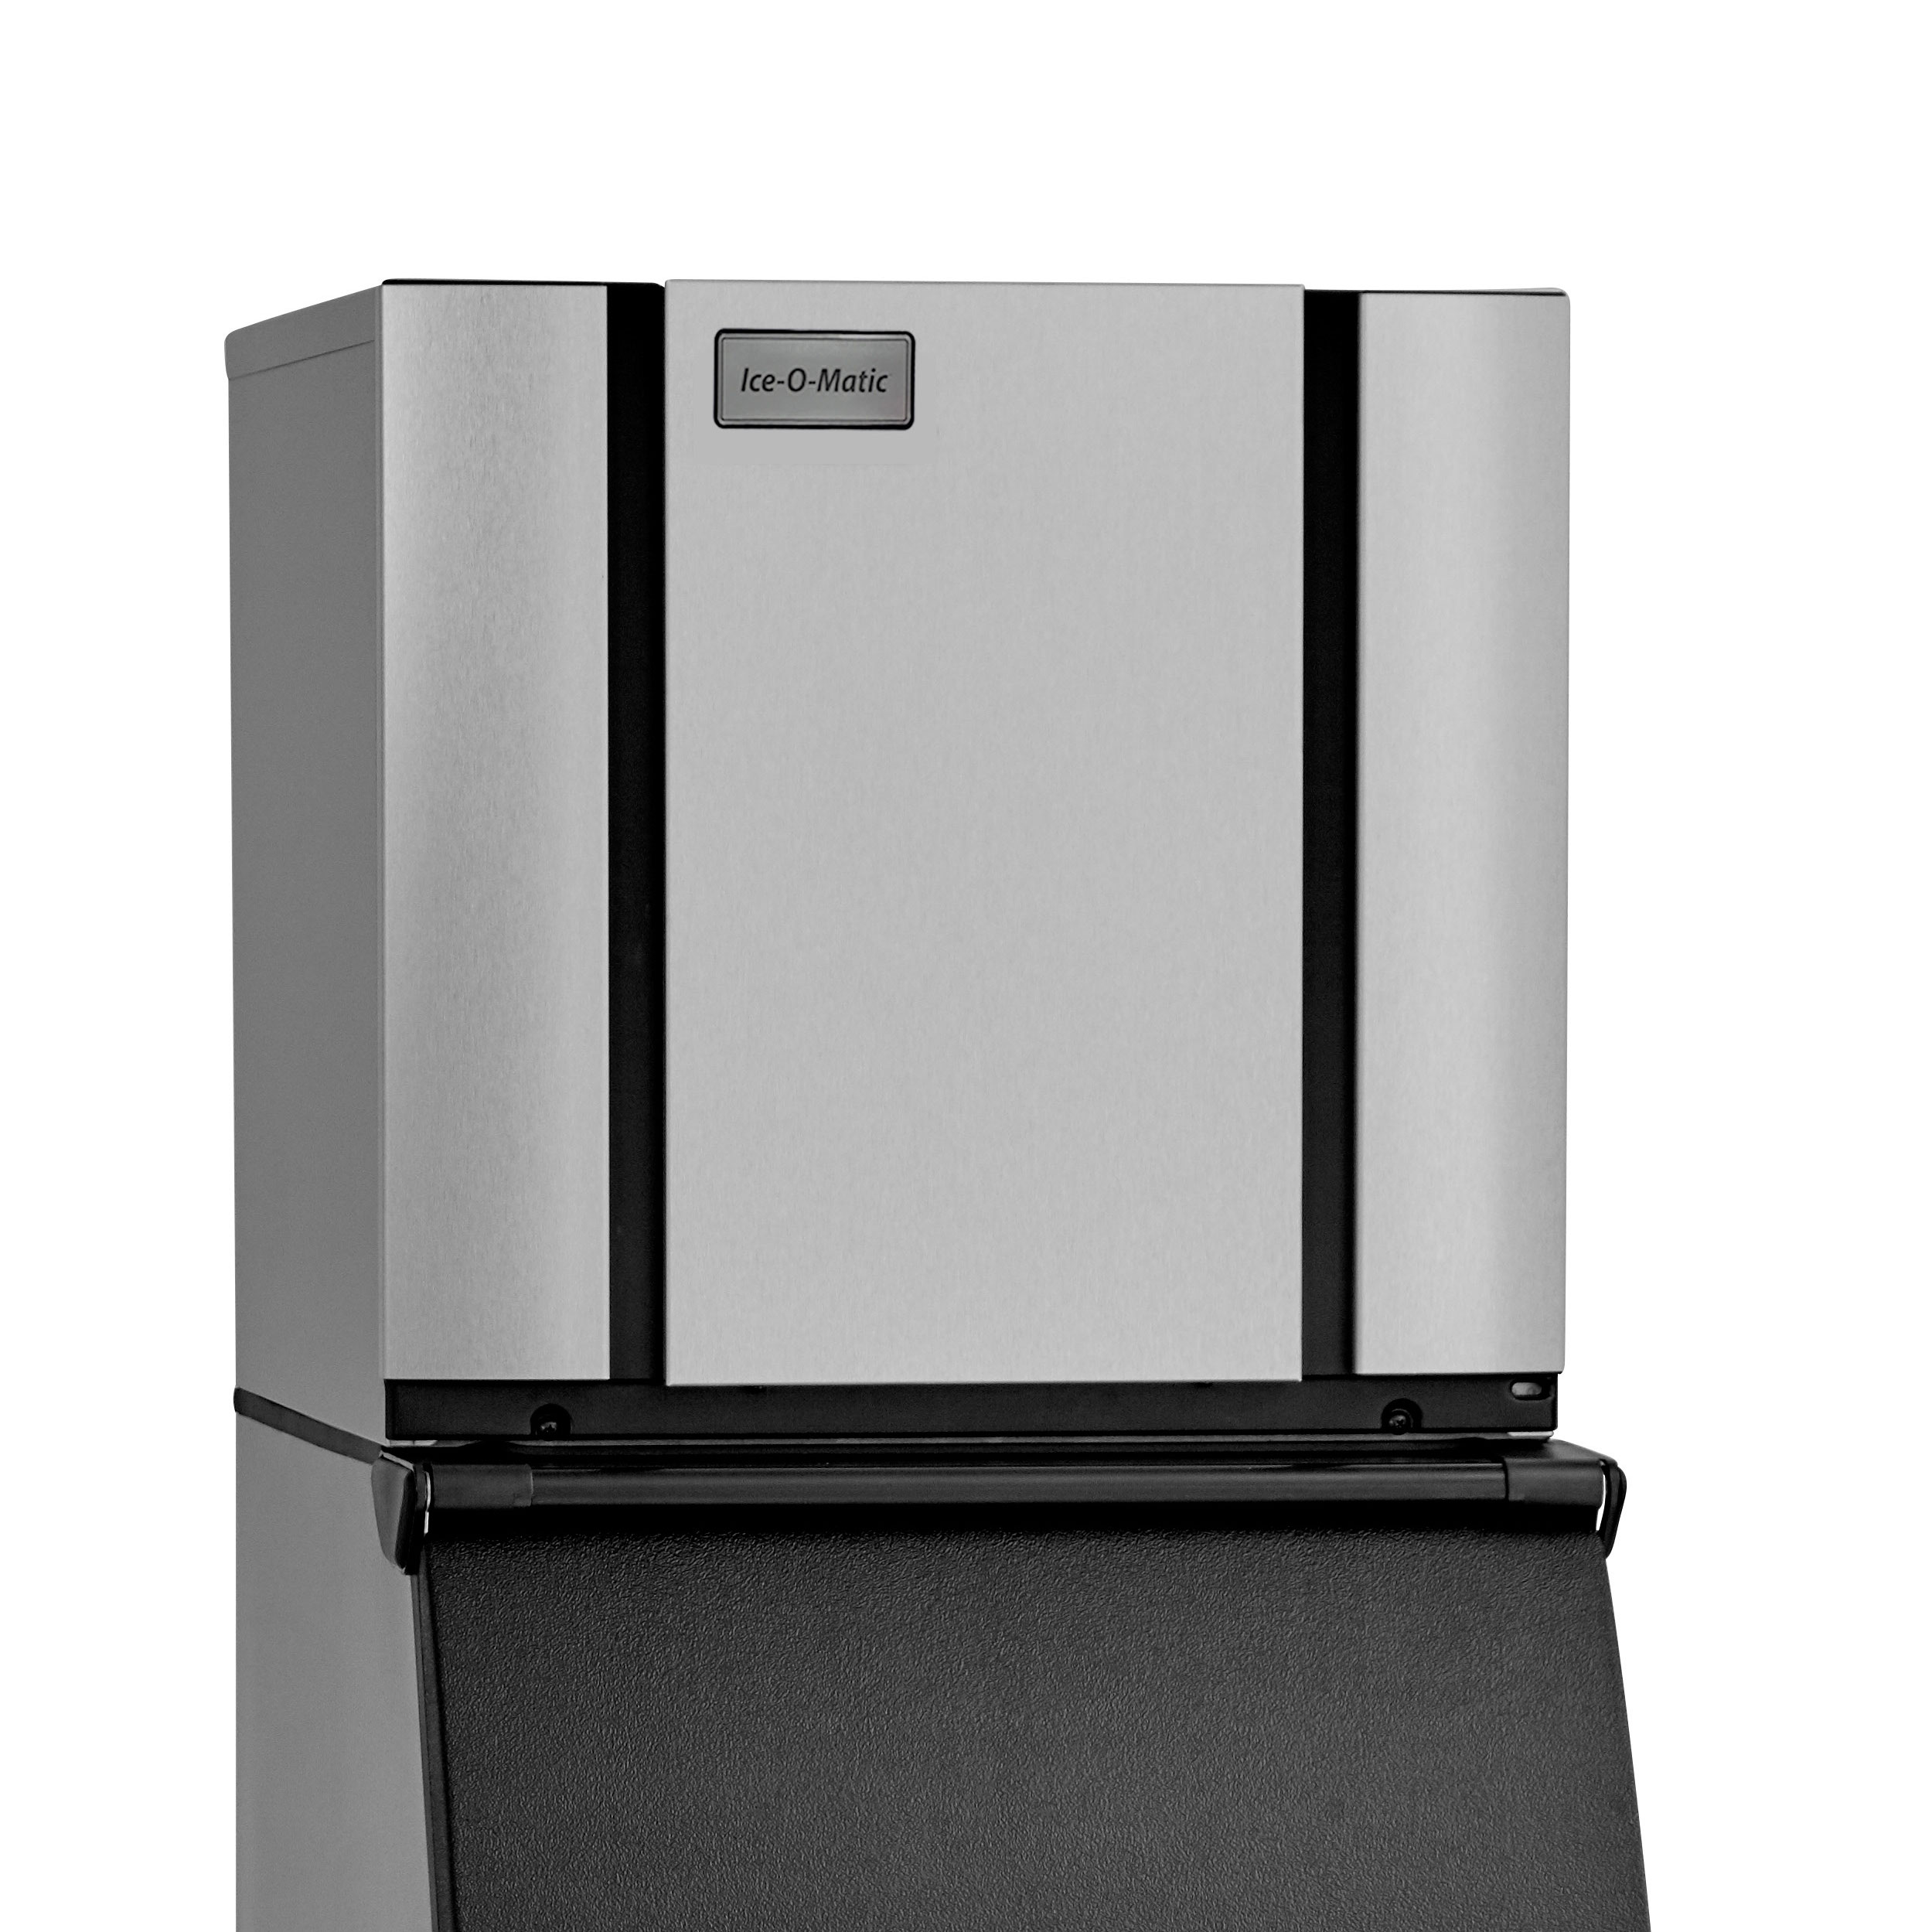 Ice-O-Matic CIM0836HR ice maker, cube-style